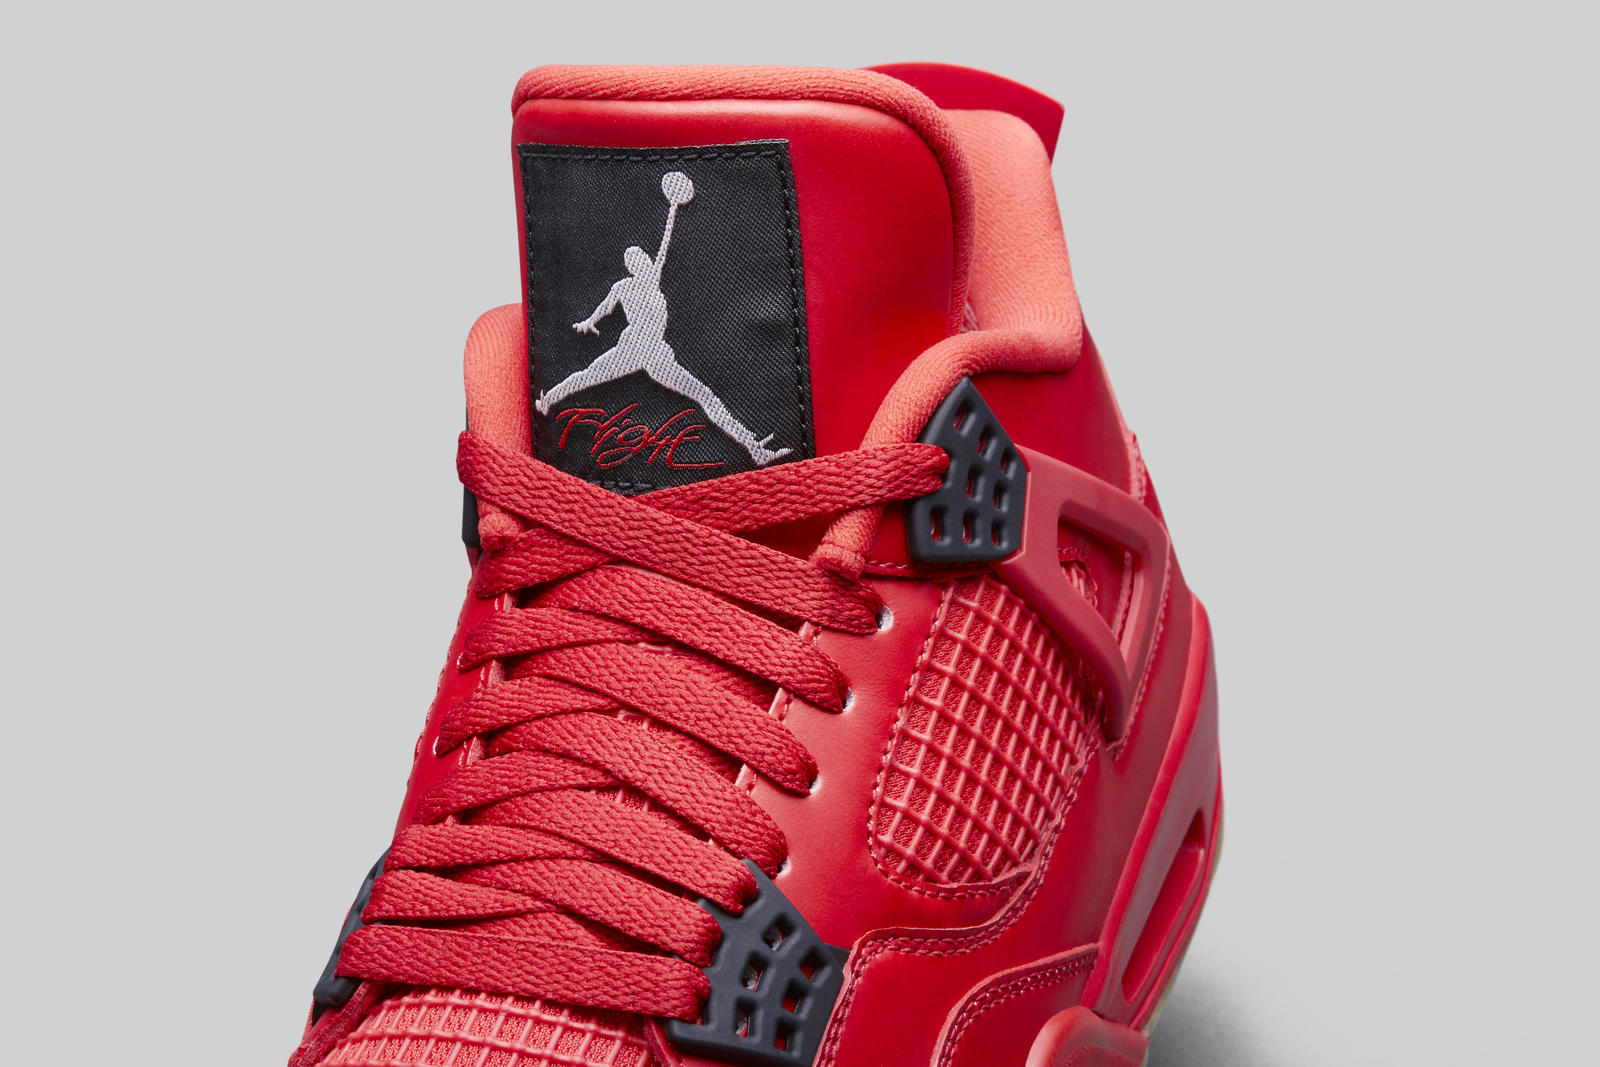 95a57fcd805 Air Jordan 4 fire red womens tongue - WearTesters